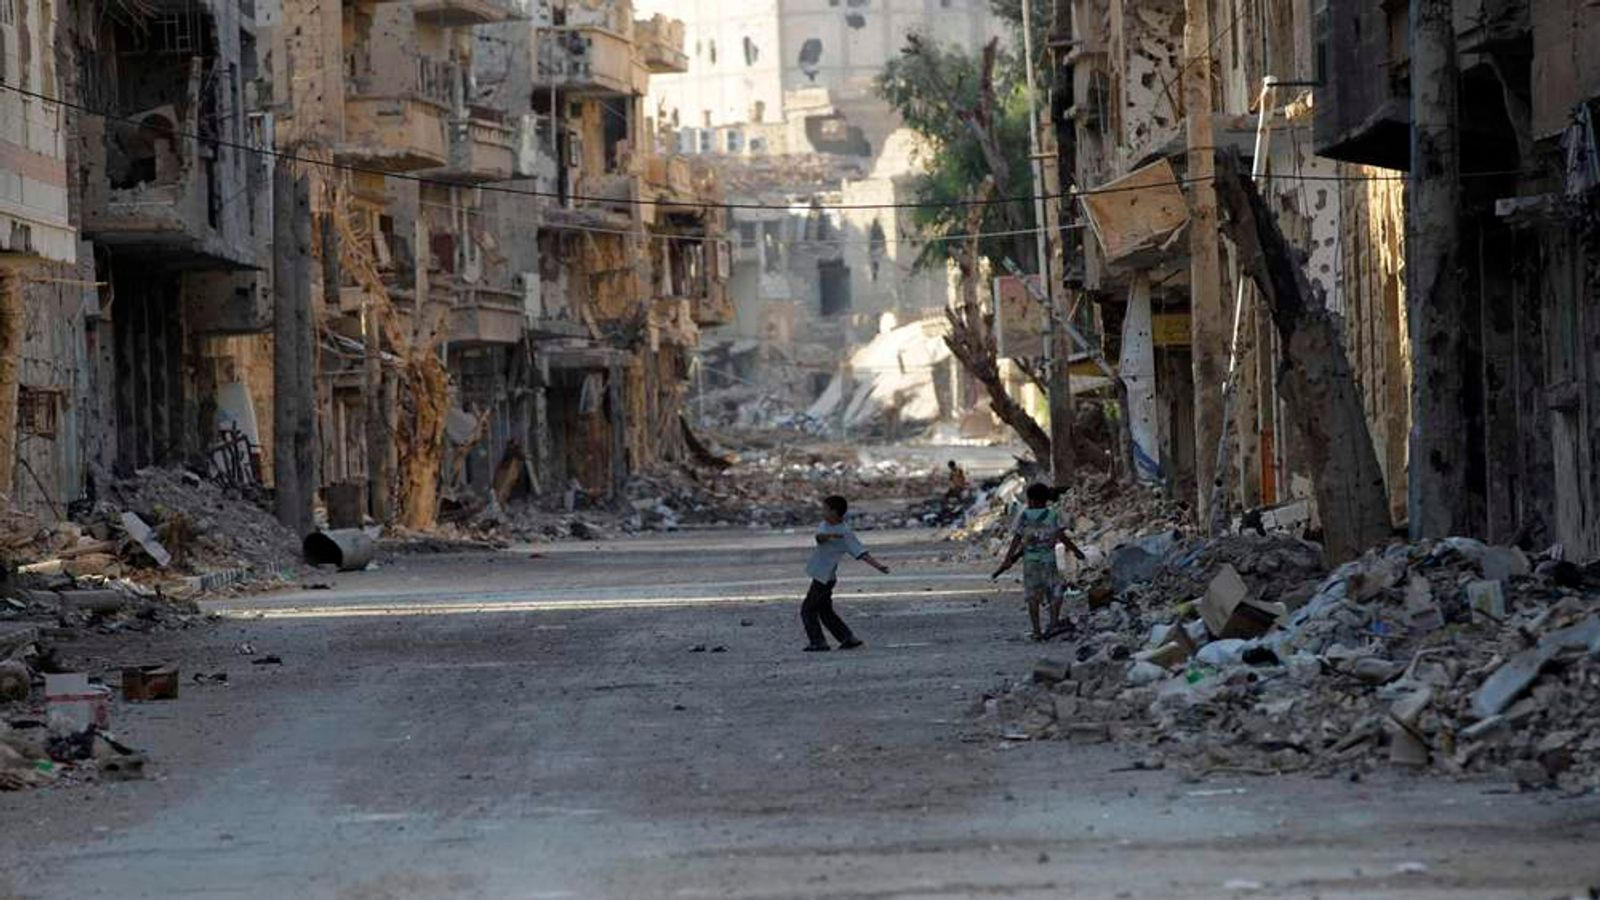 Syrian children play in a damaged street in Deir al-Zor